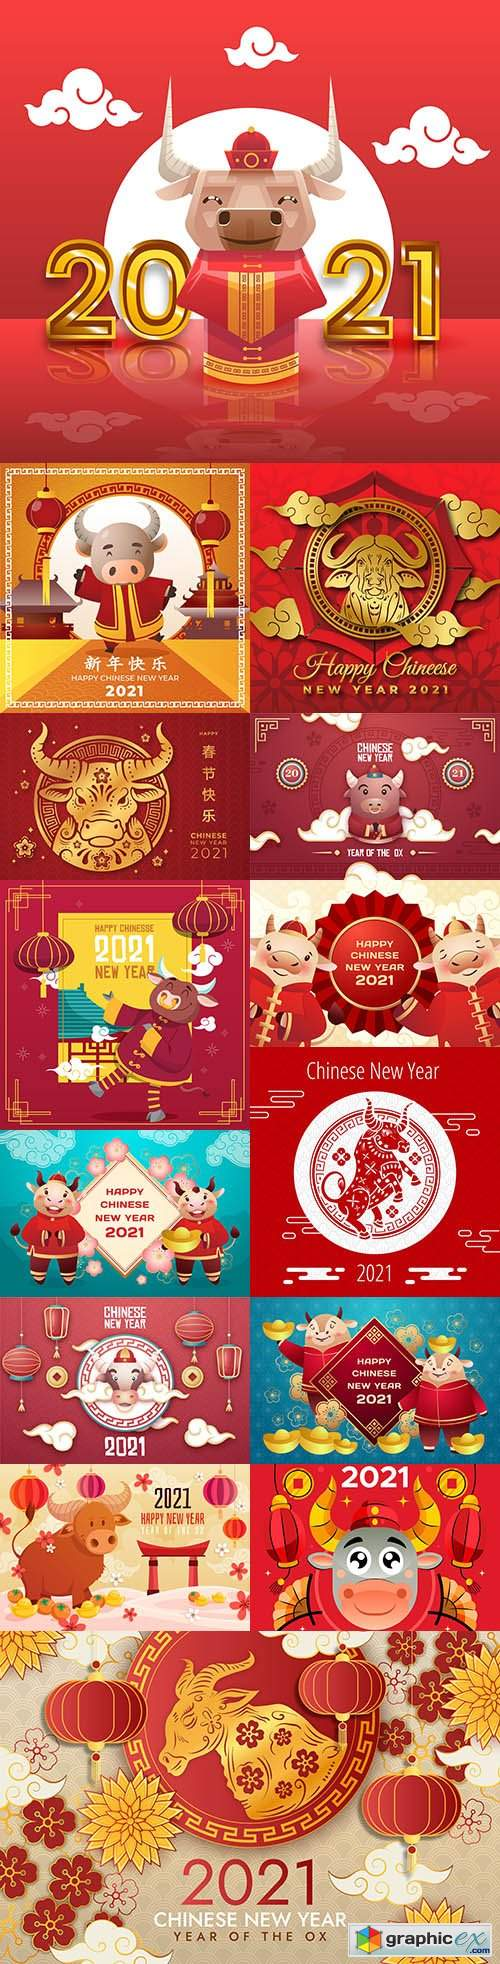 Chinese festive New Year 2021 symbol bull design 3